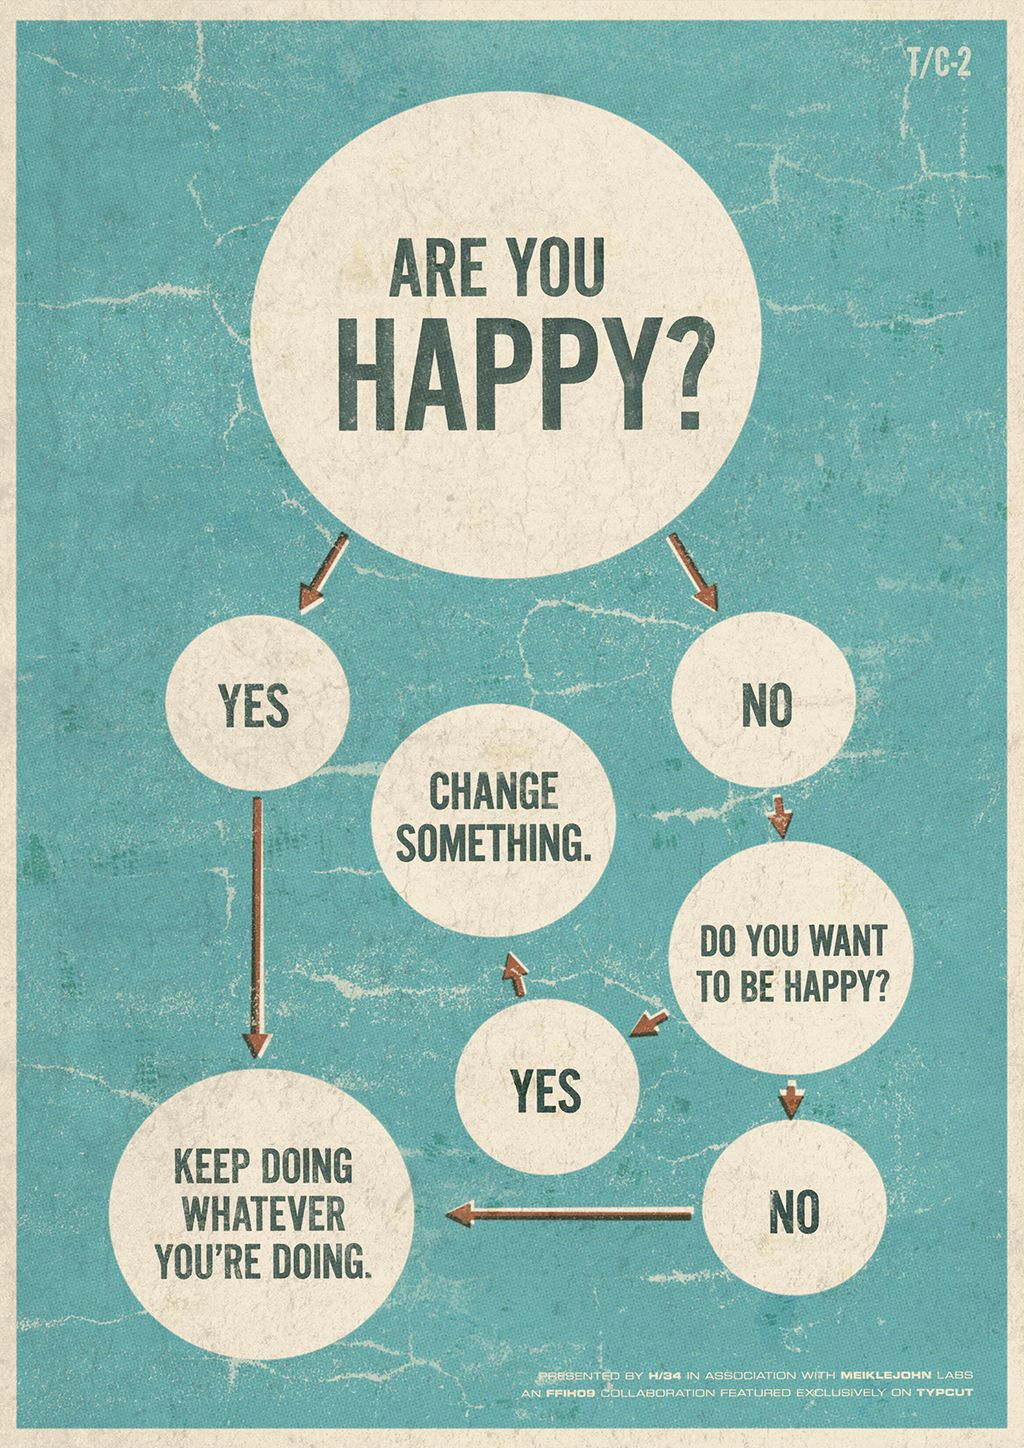 Are you happy? #humor #infographic | Infographics | Pinterest ...